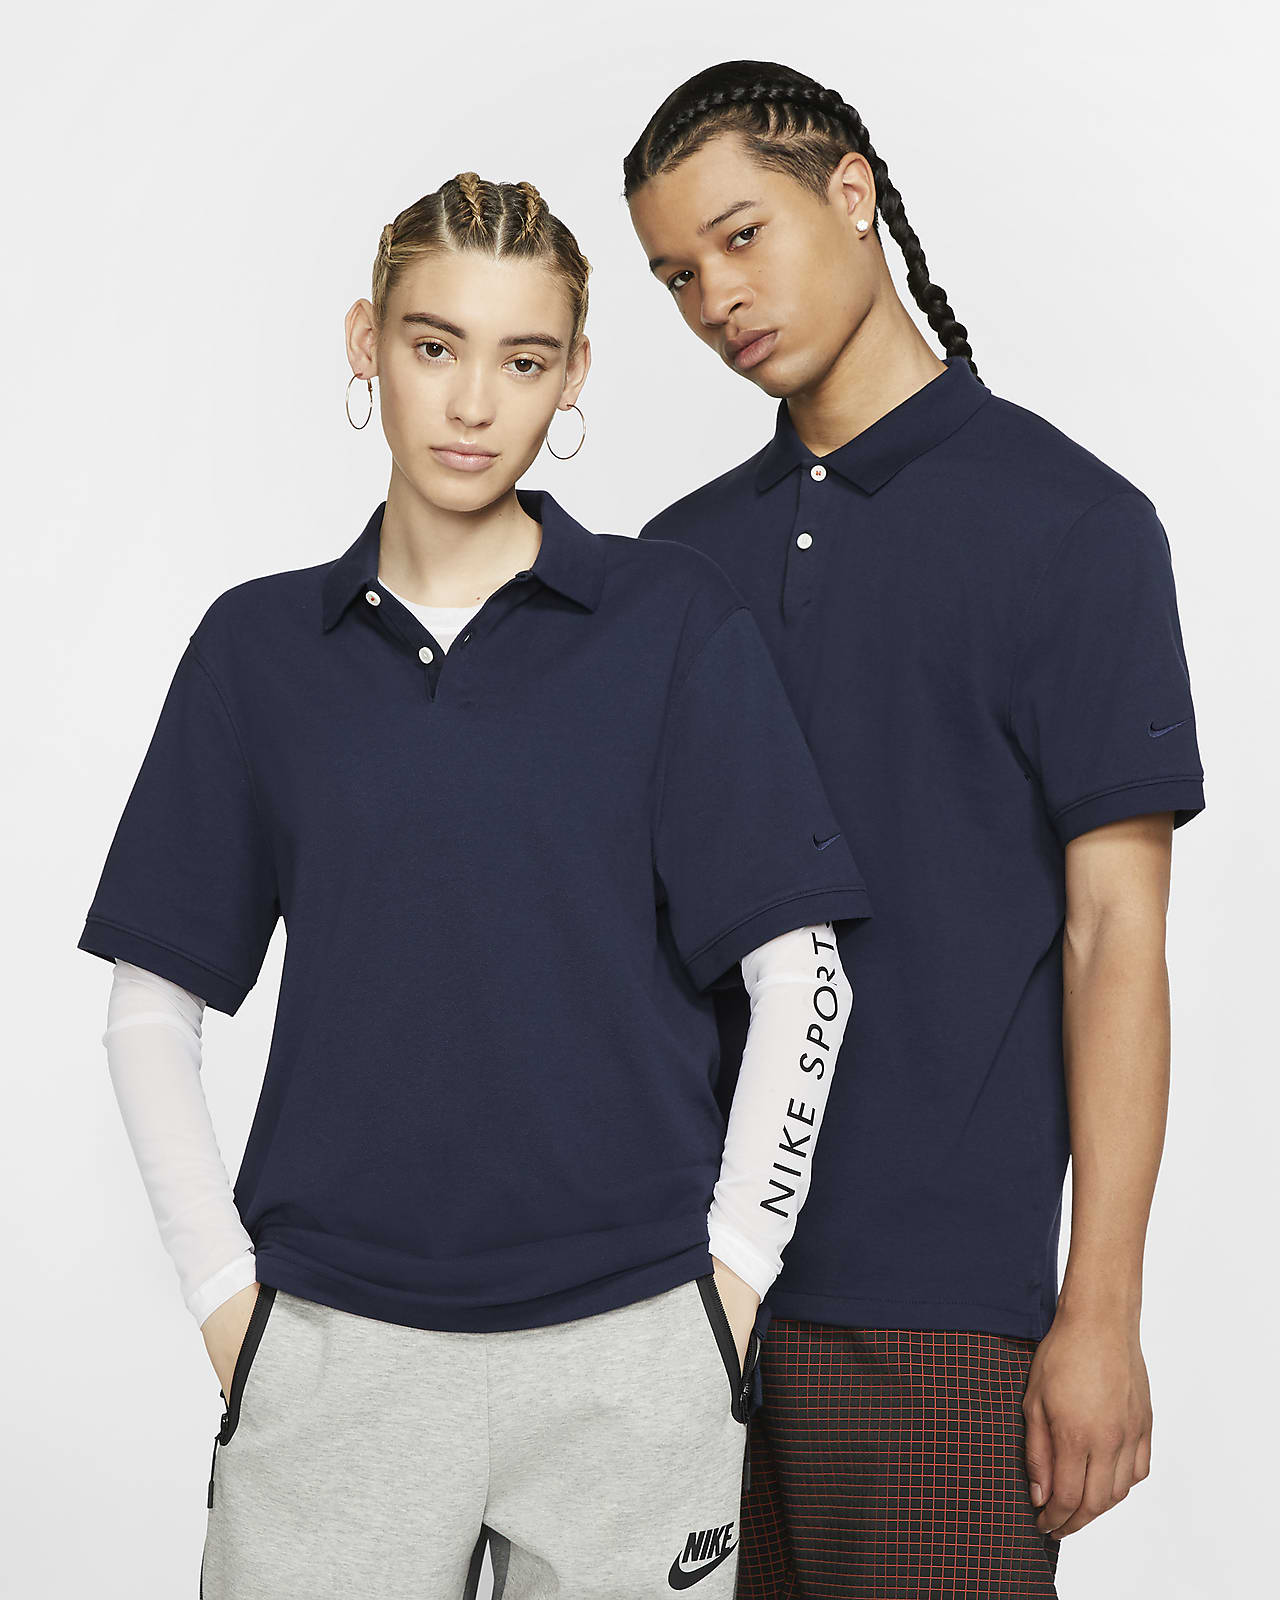 The Nike Polo (Without Orange Collar Label) med smal passform för män